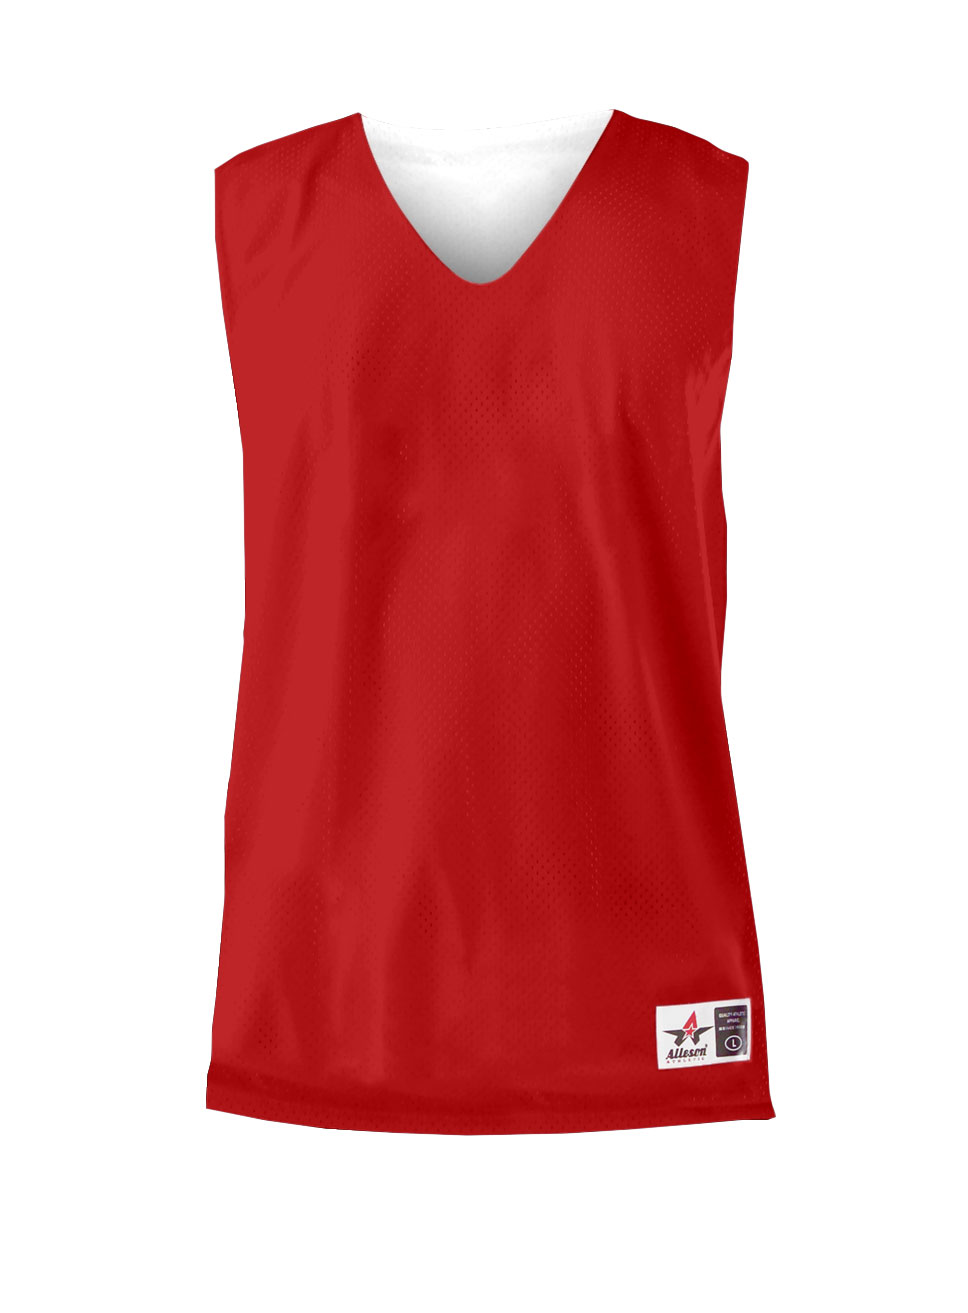 Alleson Adult Reversible Mesh Tank Top